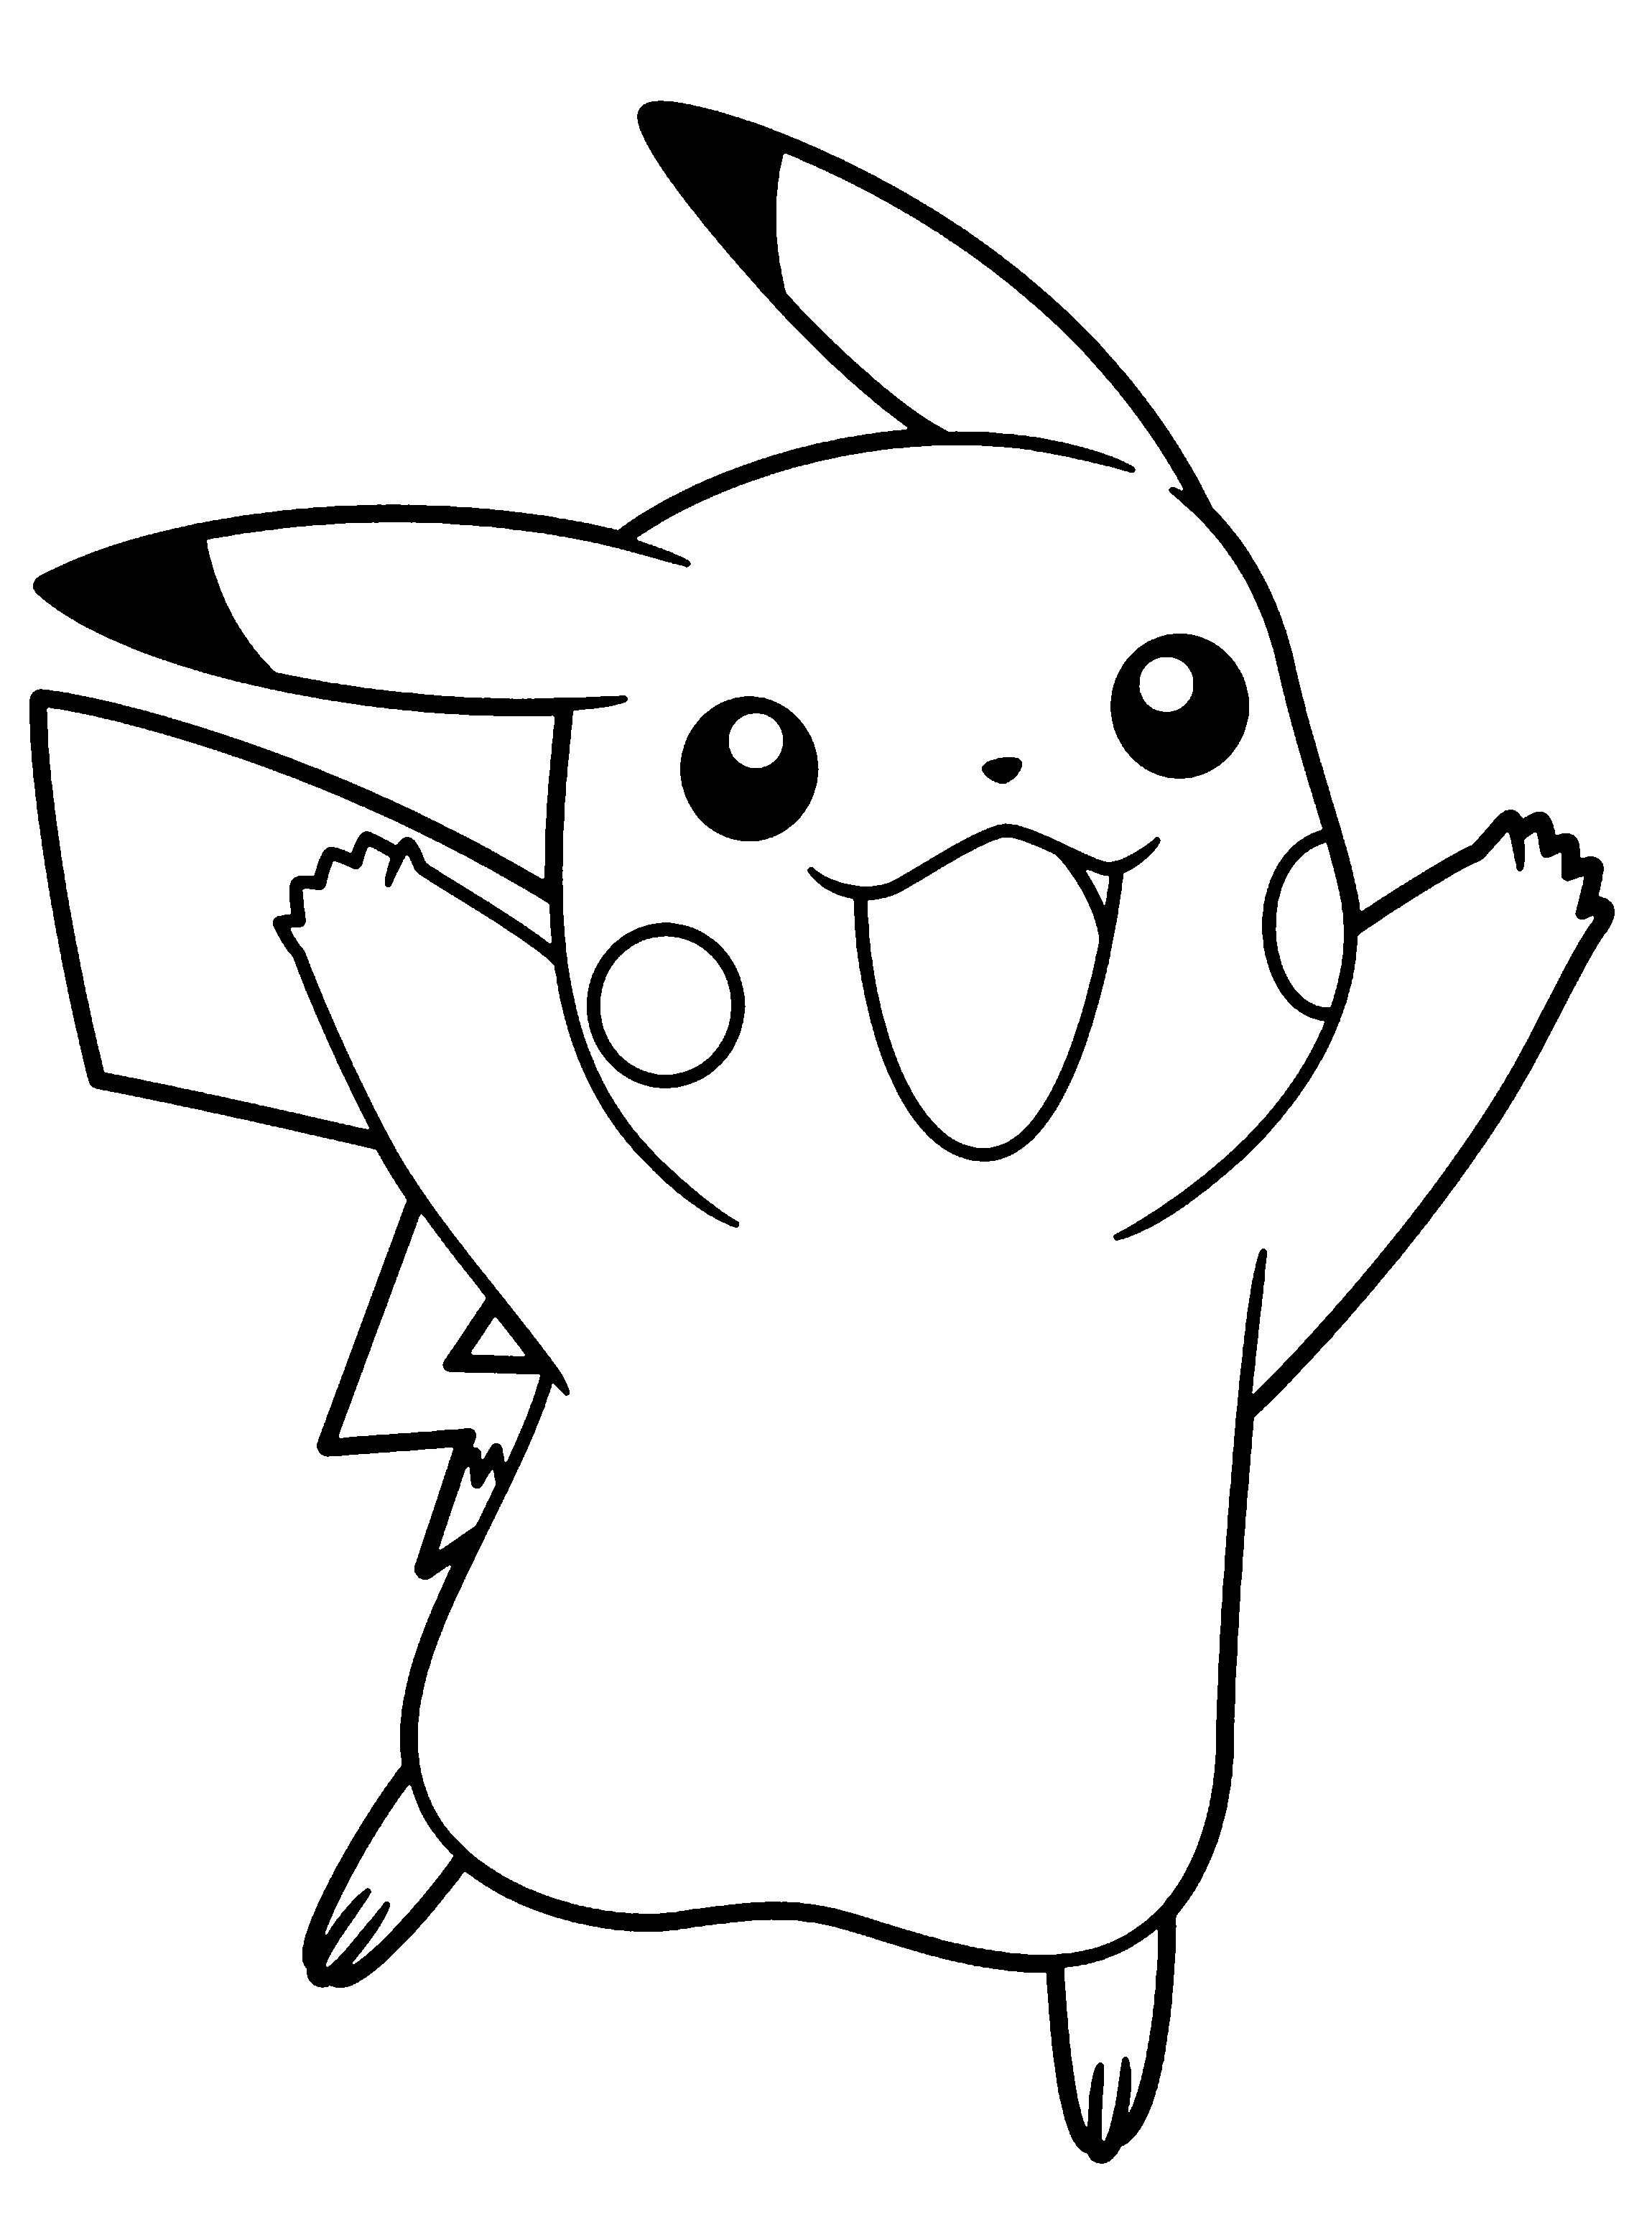 pikachu coloring pages printable pikachu coloring pages to download and print for free pikachu pages printable coloring